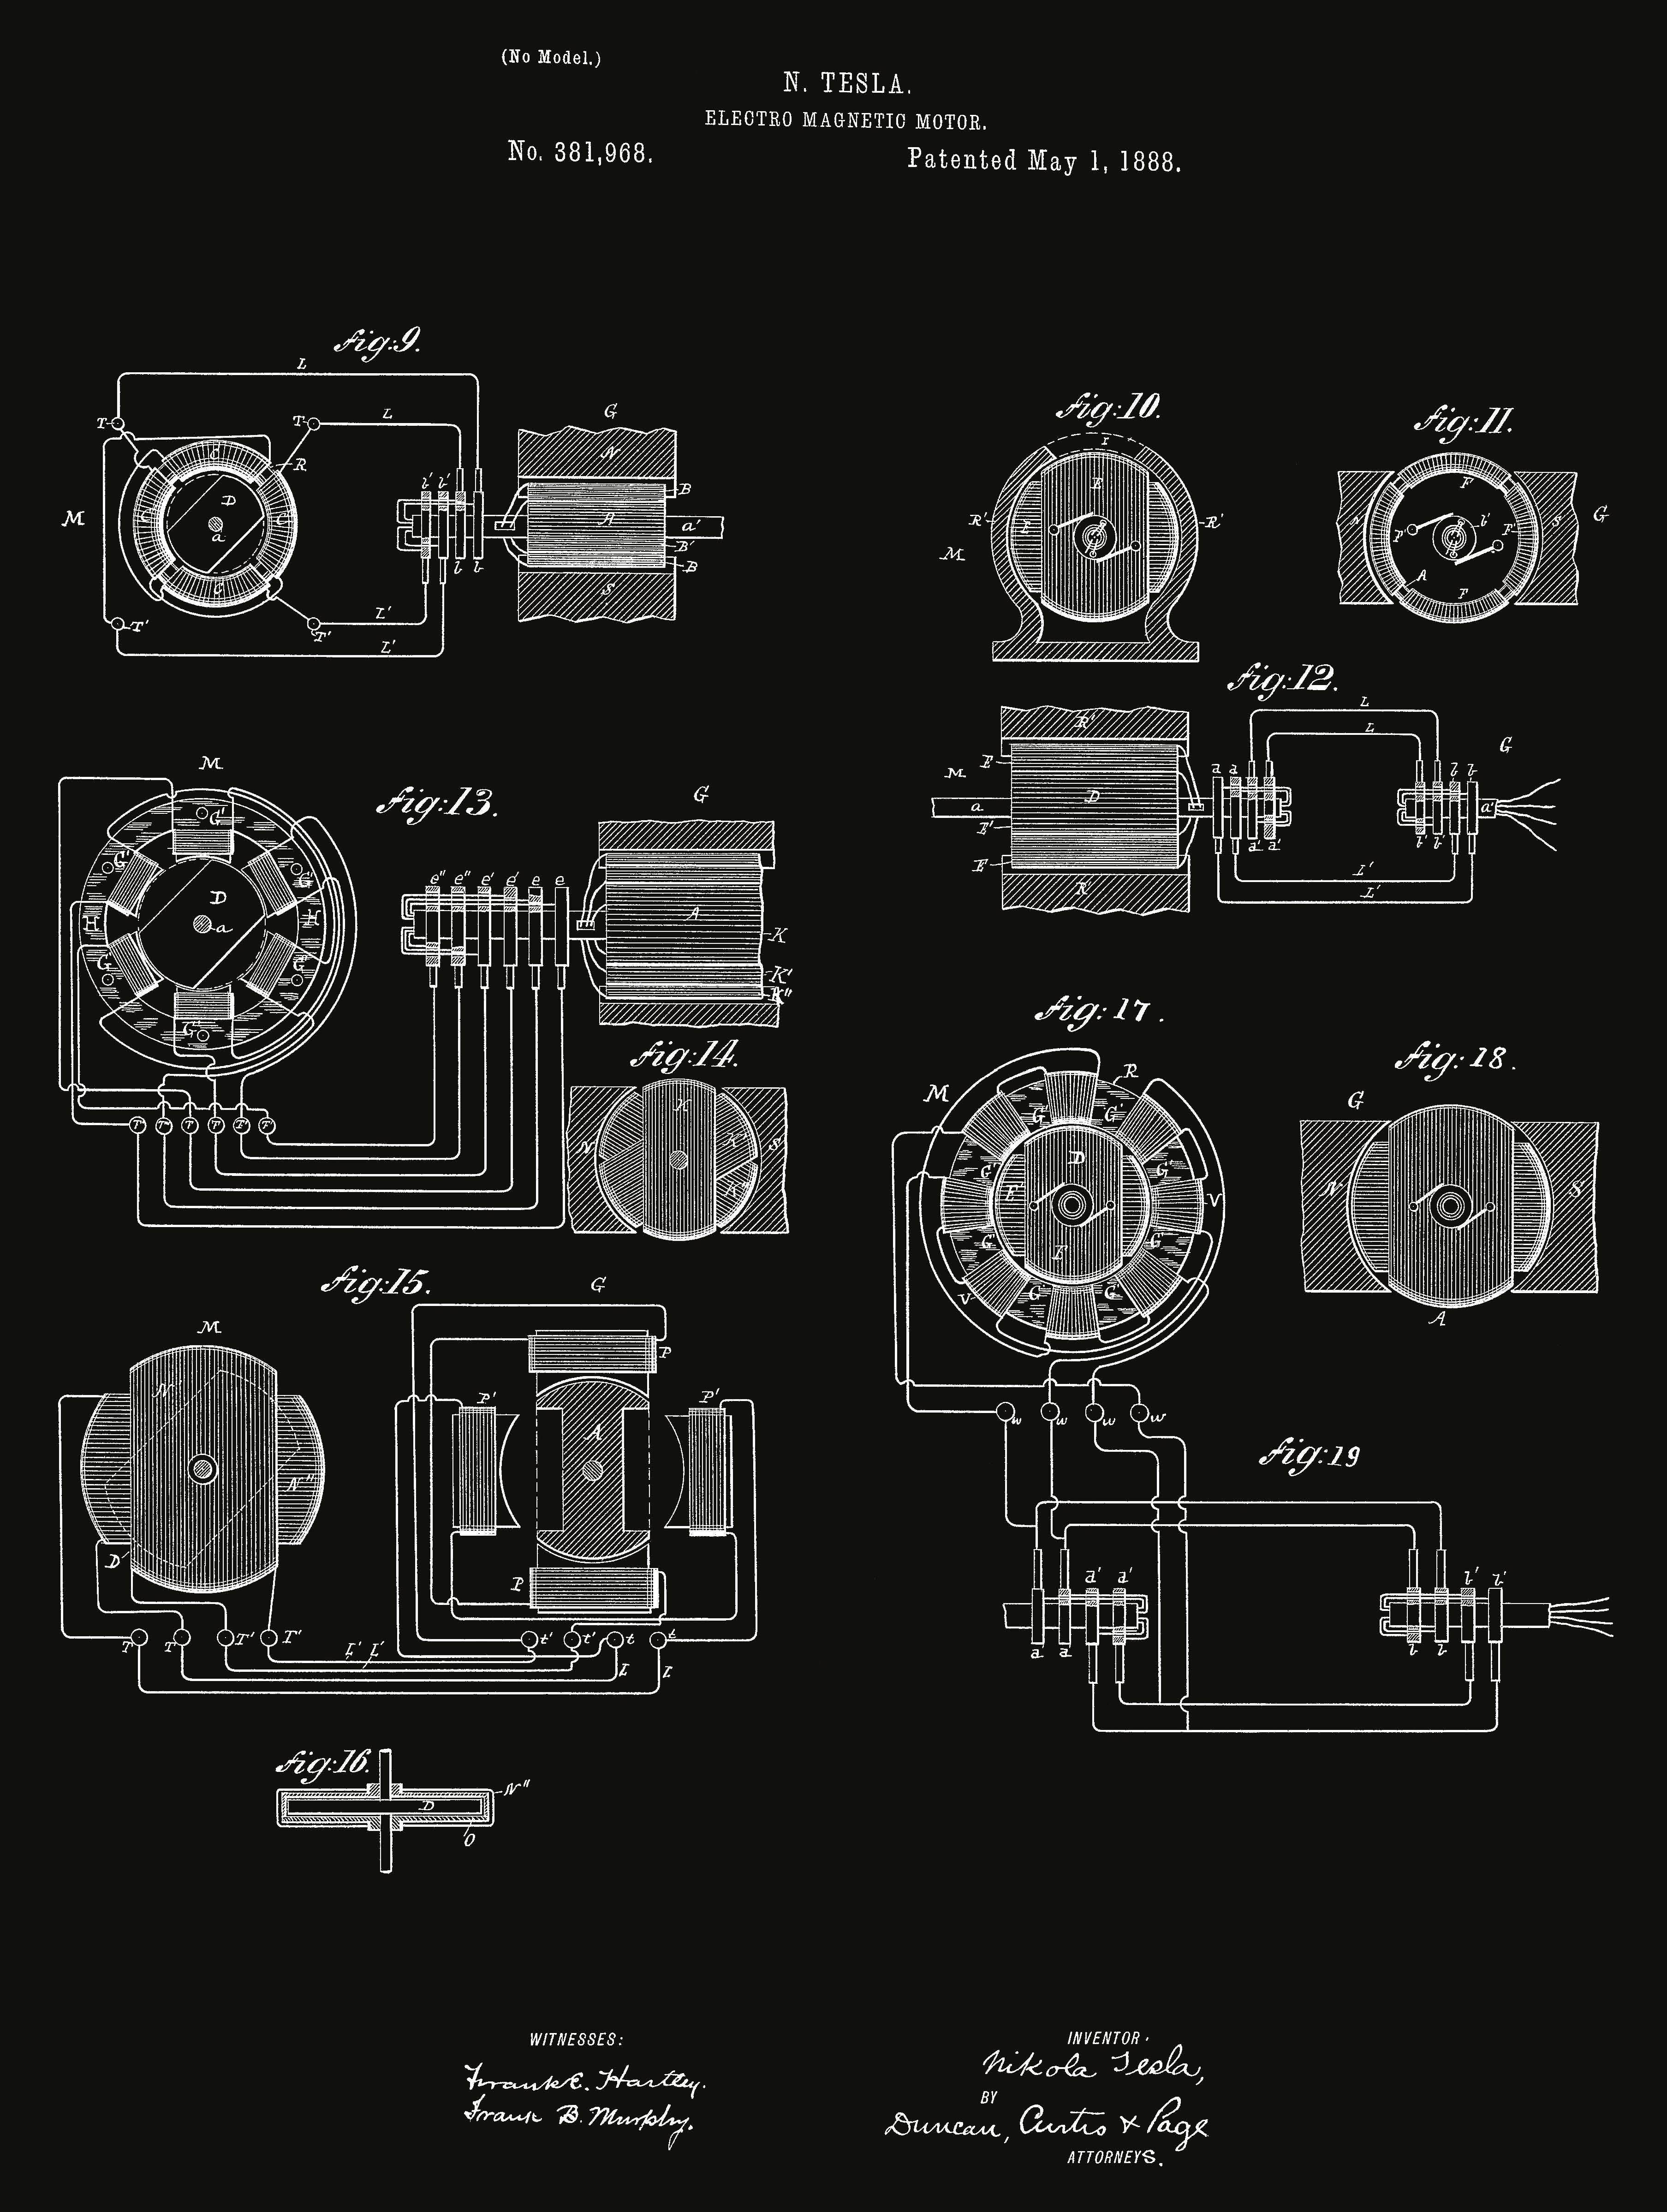 Chlo carton blueprint designs blueprint designs for this project i wanted to redesign some patents in order decorate a room in an industrial style malvernweather Image collections